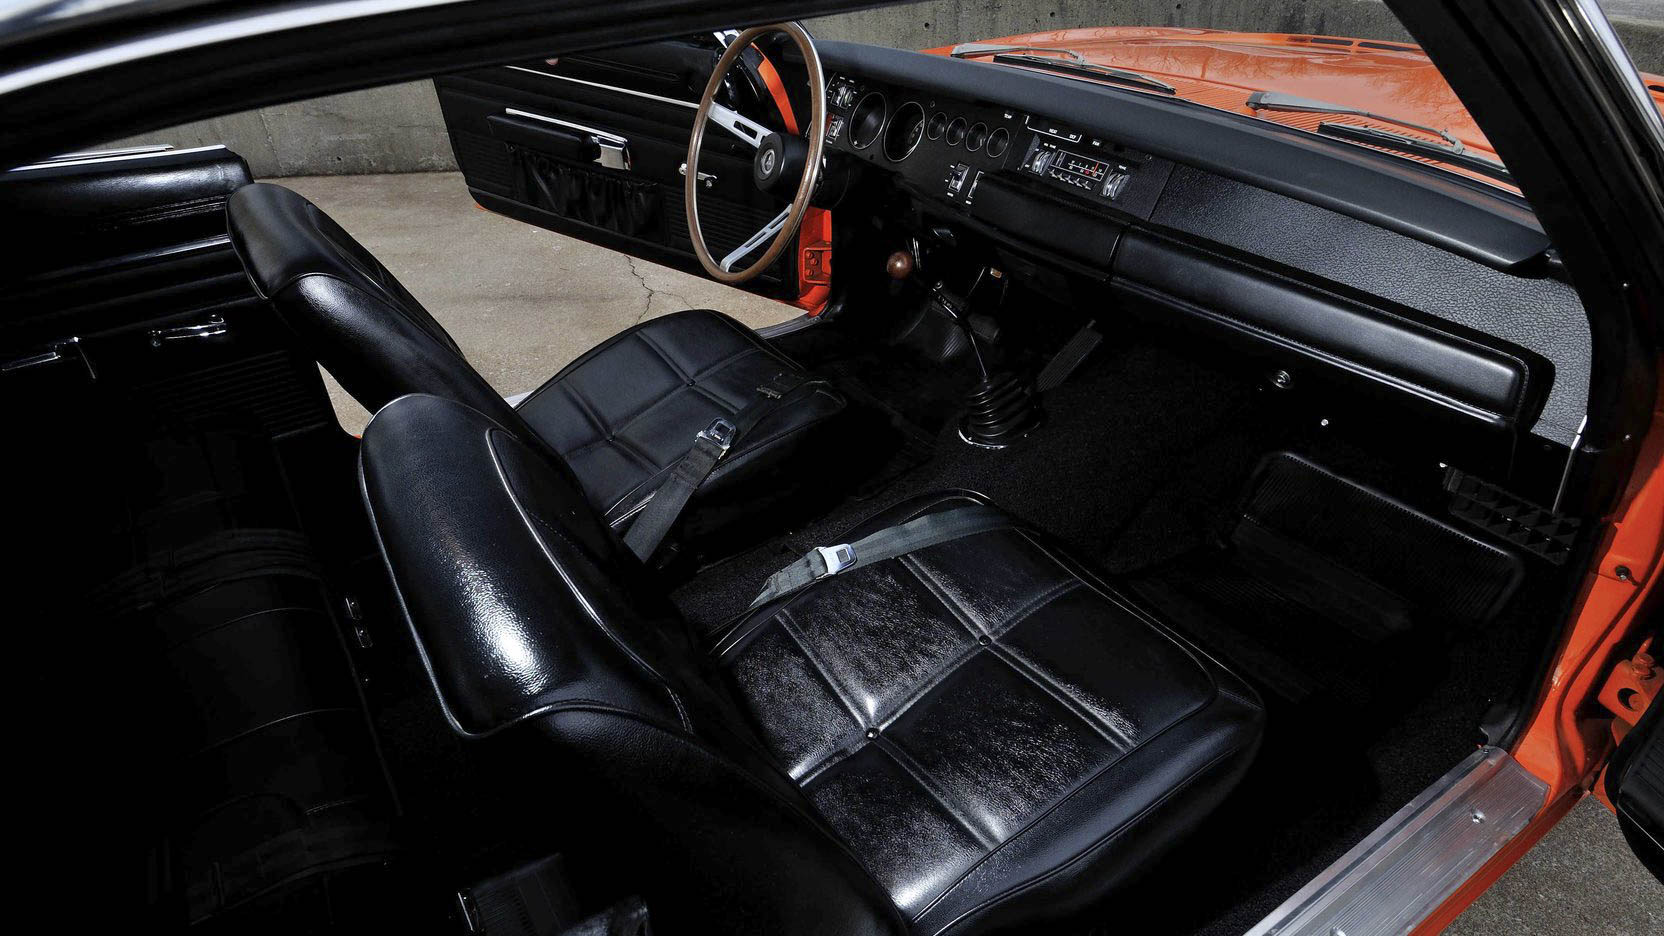 1969 Dodge Charger 500 interior seat detail